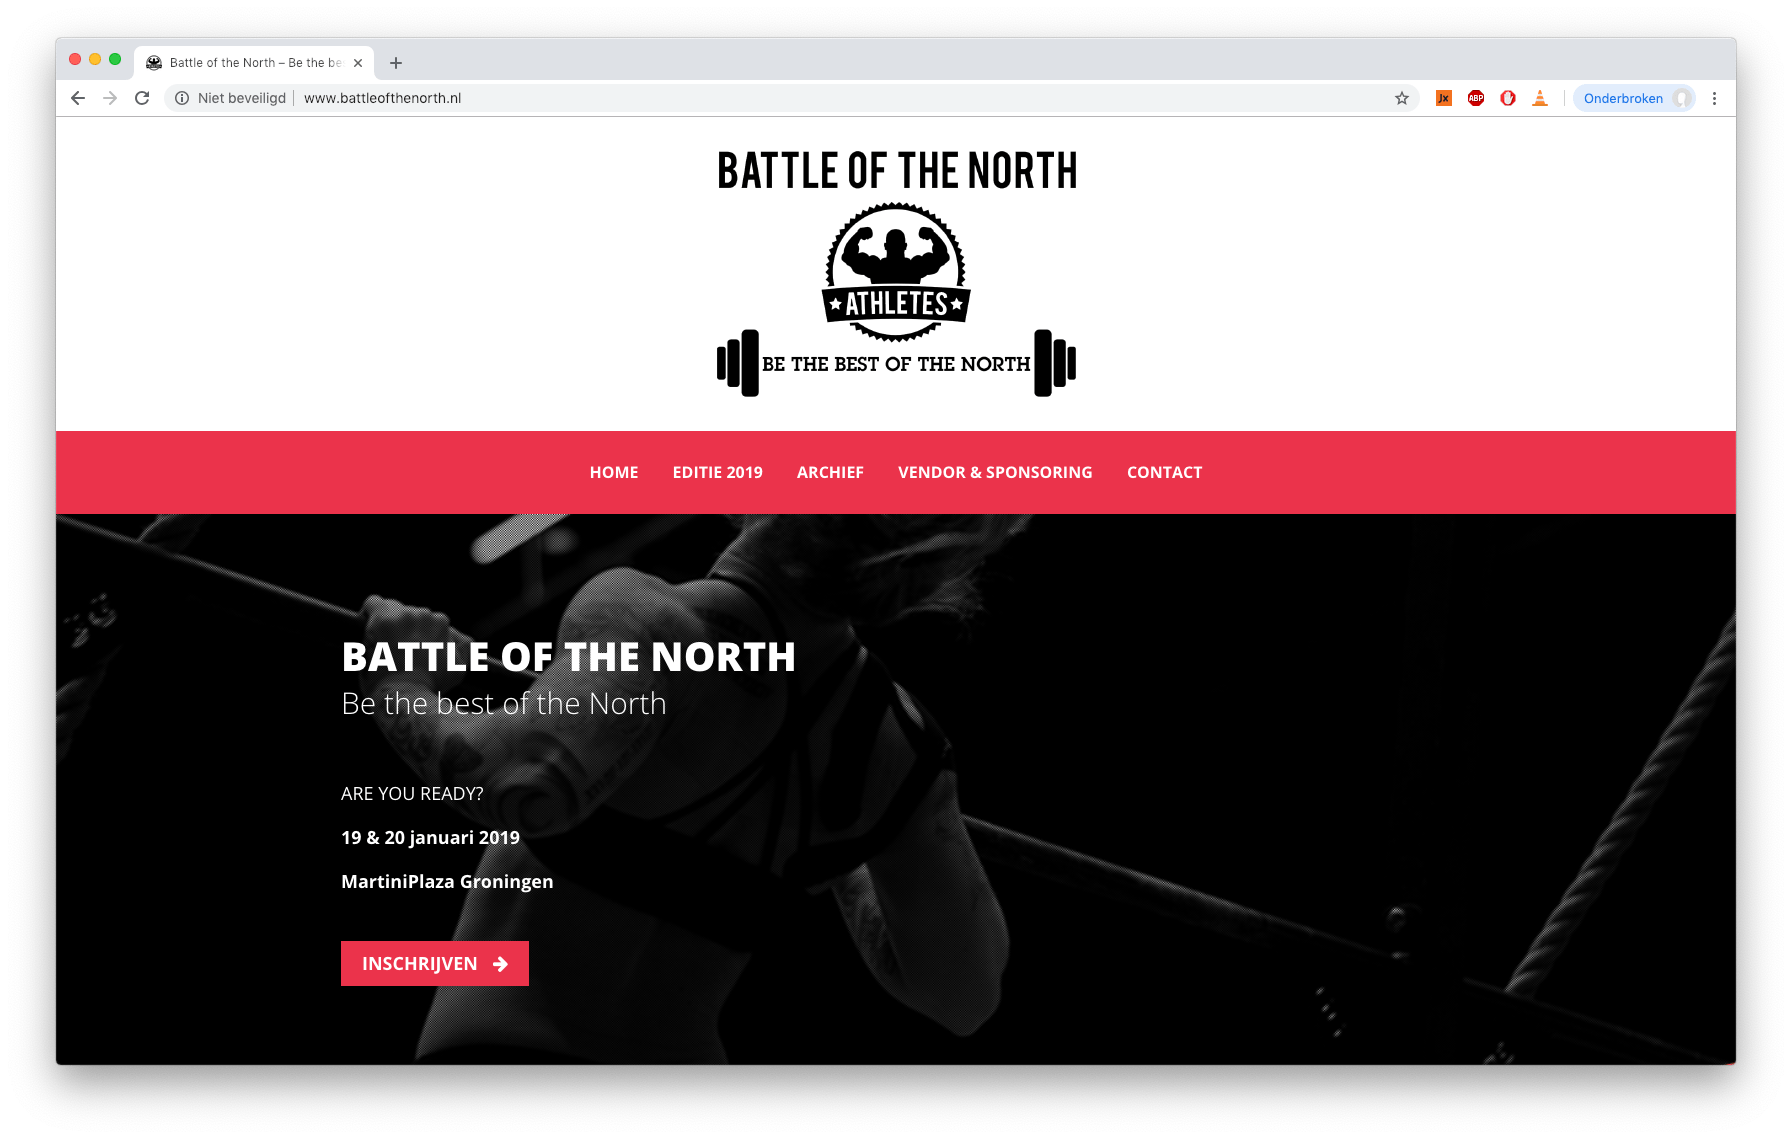 Battle of the North